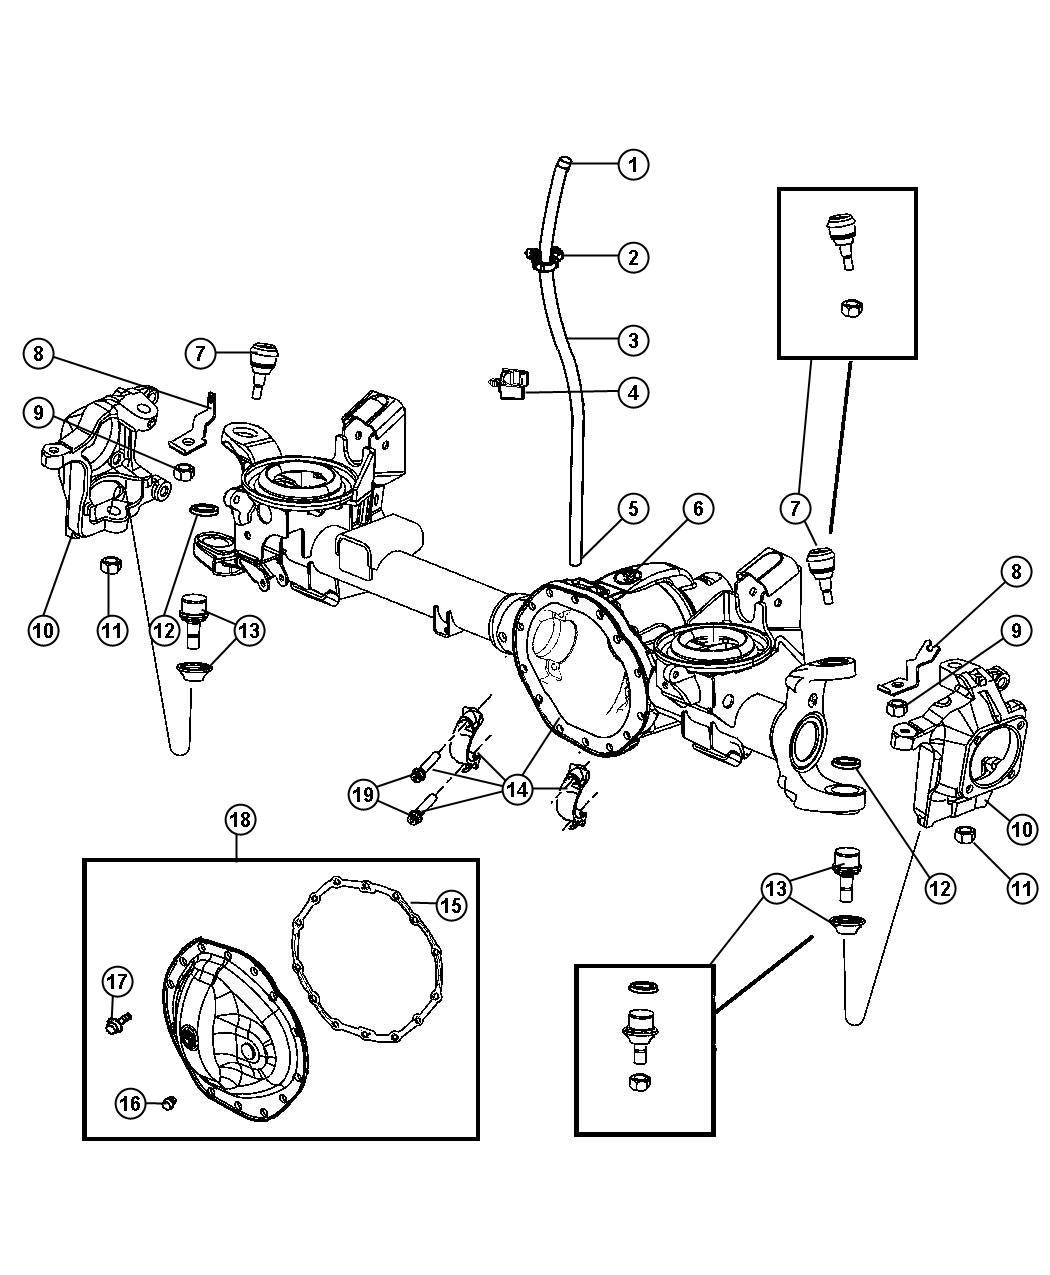 1999 dodge ram 1500 front axle diagram 1985 chevy silverado wiring rear schematic get free image about